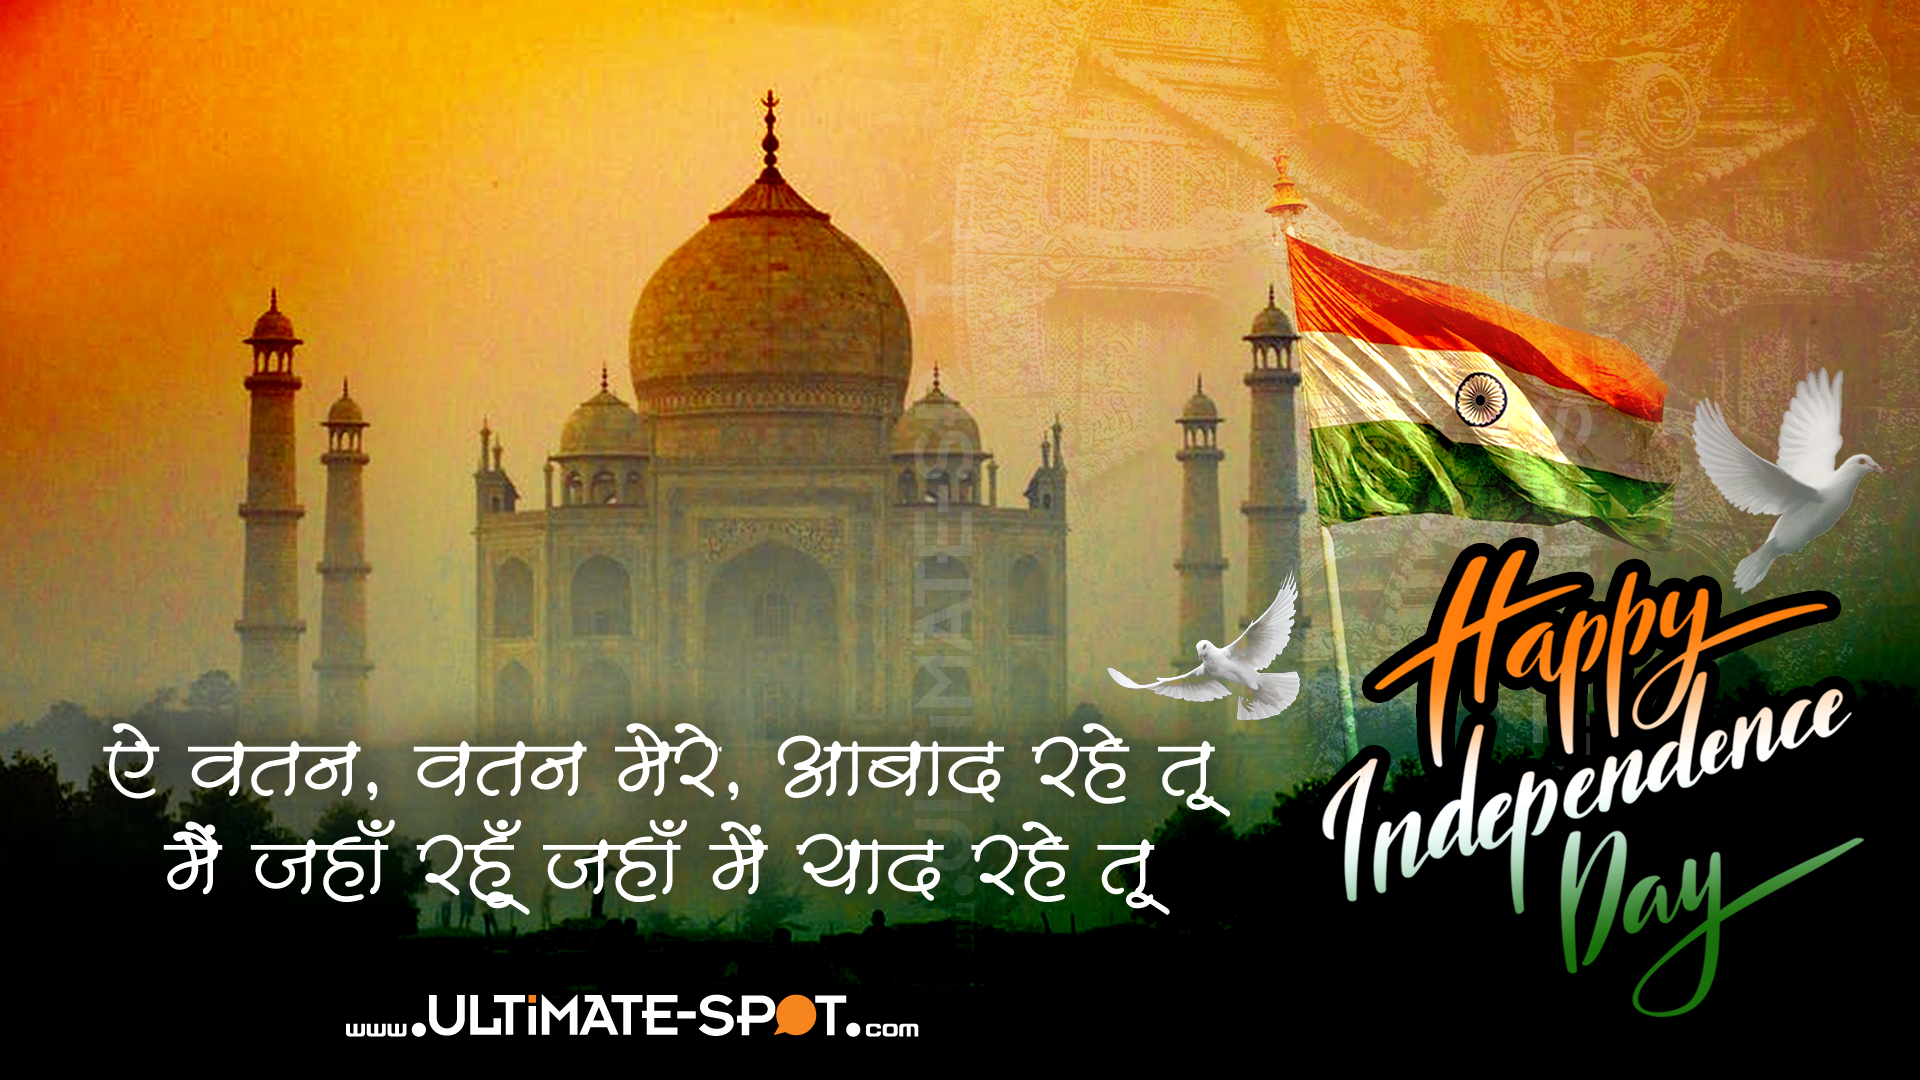 independence day of india – 15 august 2018 http://ultimate-spot